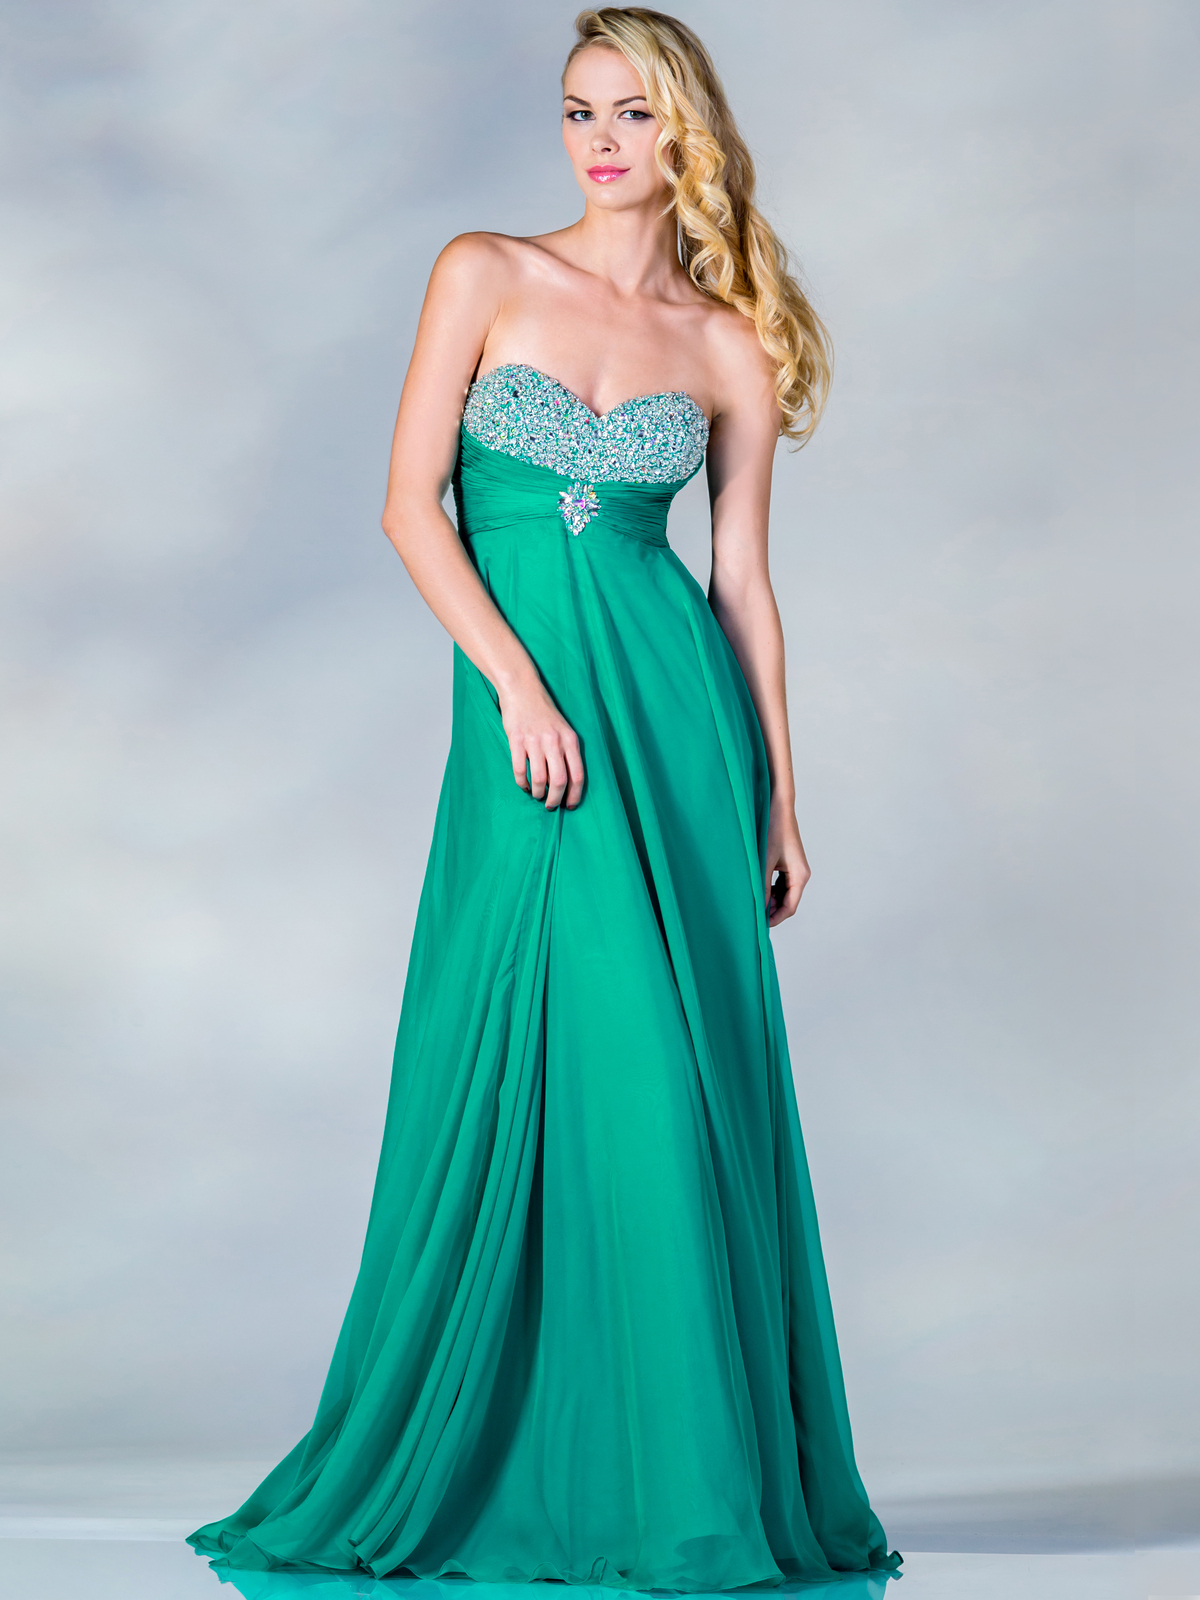 Empire Waist Chiffon Evening Dress With Jeweled Bust Top